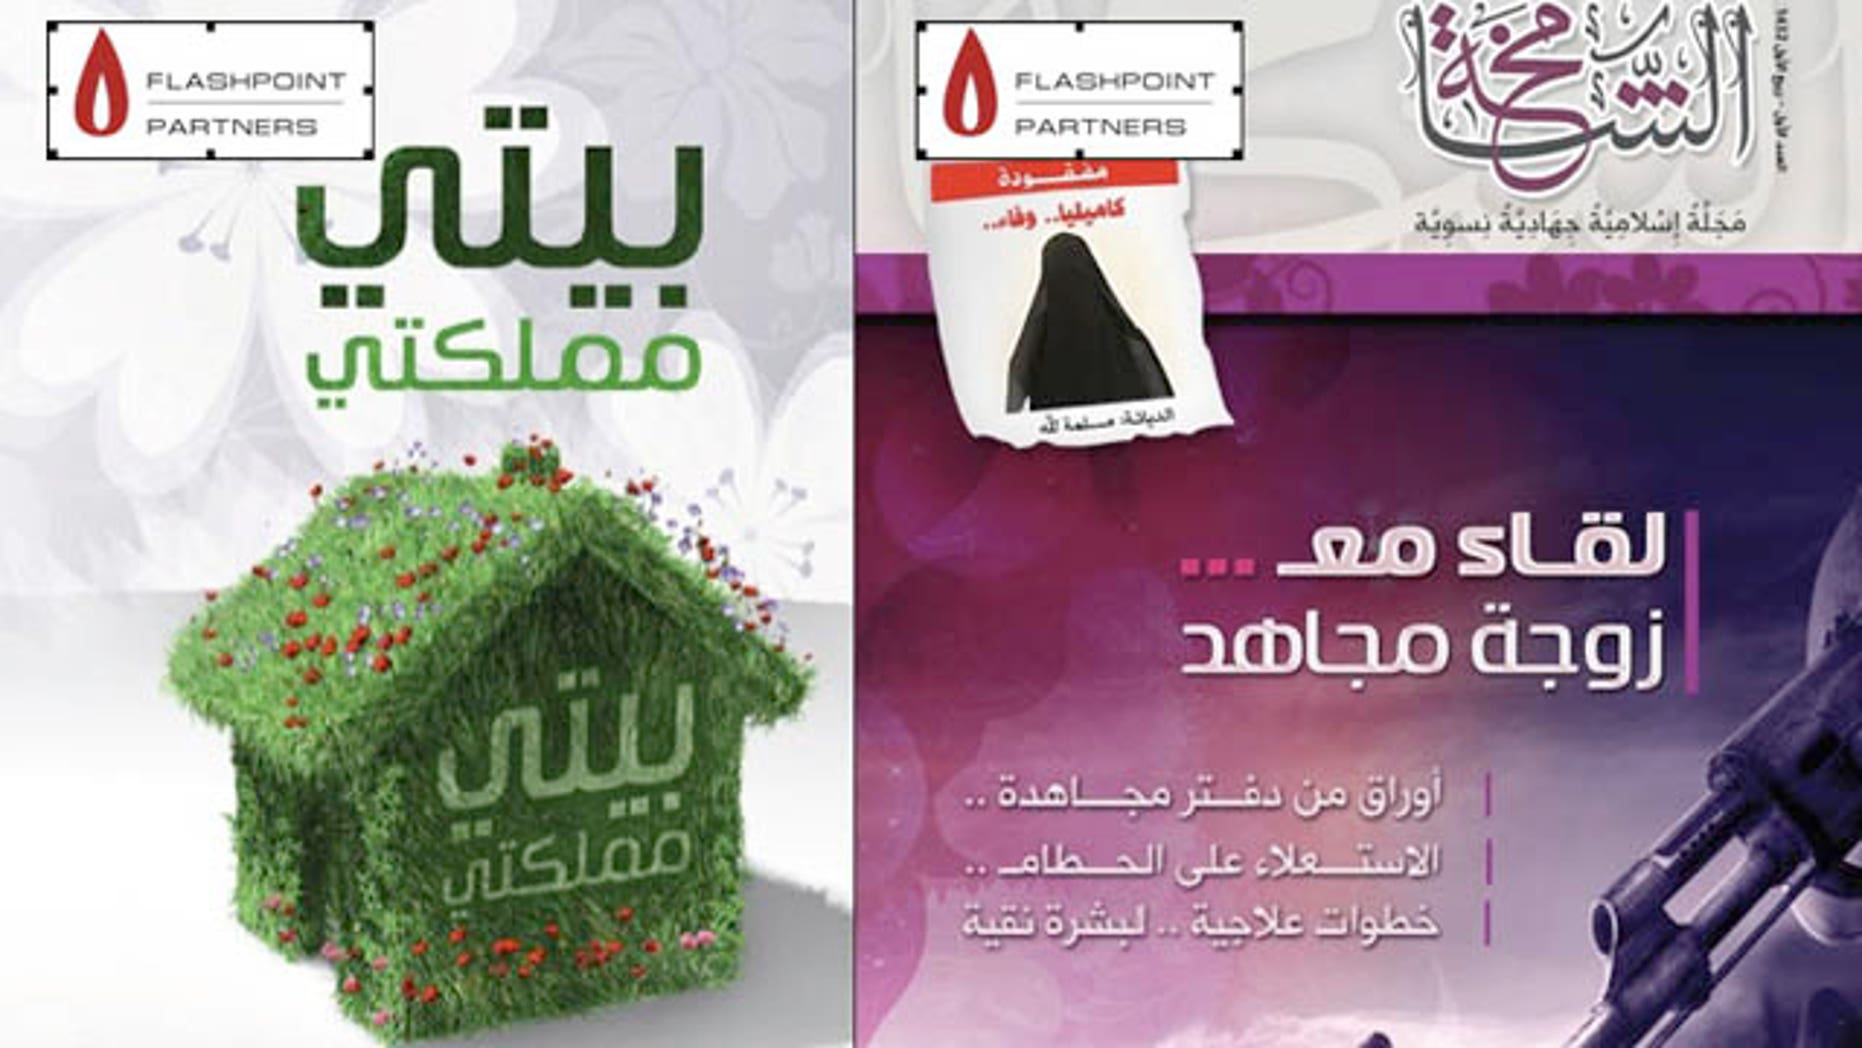 """Al Shamikha magazine, which features beauty and fashion tips alongside articles on """"marrying a mujahedeen"""" and carrying out suicide attacks, was recently released by the Al Qaeda-affiliated Al Fajr Media Center. This image of the glossy, 30-page magazine was obtained by Flashpoint Partners. (Flashpoint Partners)"""